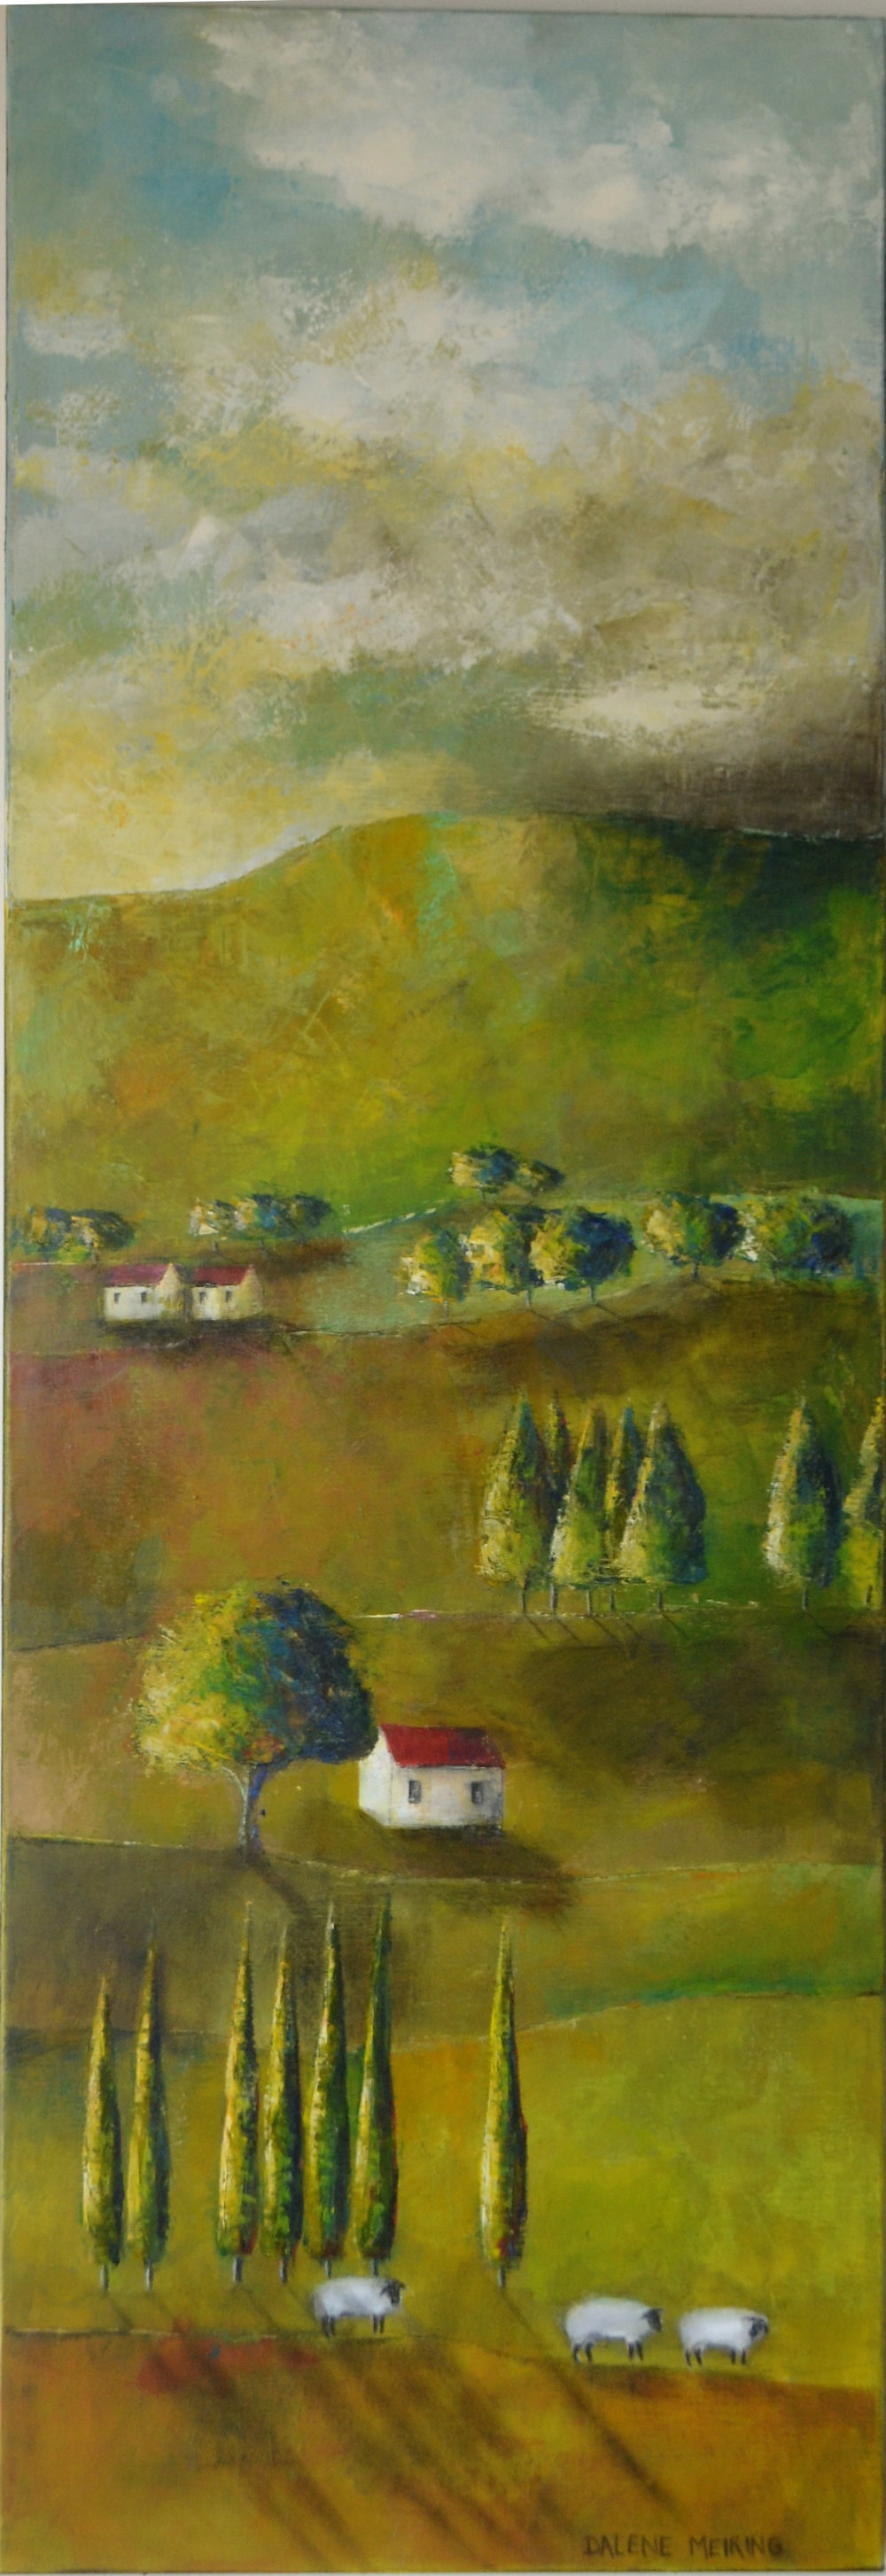 Sunday Afternoon (click to extend)  Dalene Meiring, oils on canvas, 1525mm x 505mm  sold